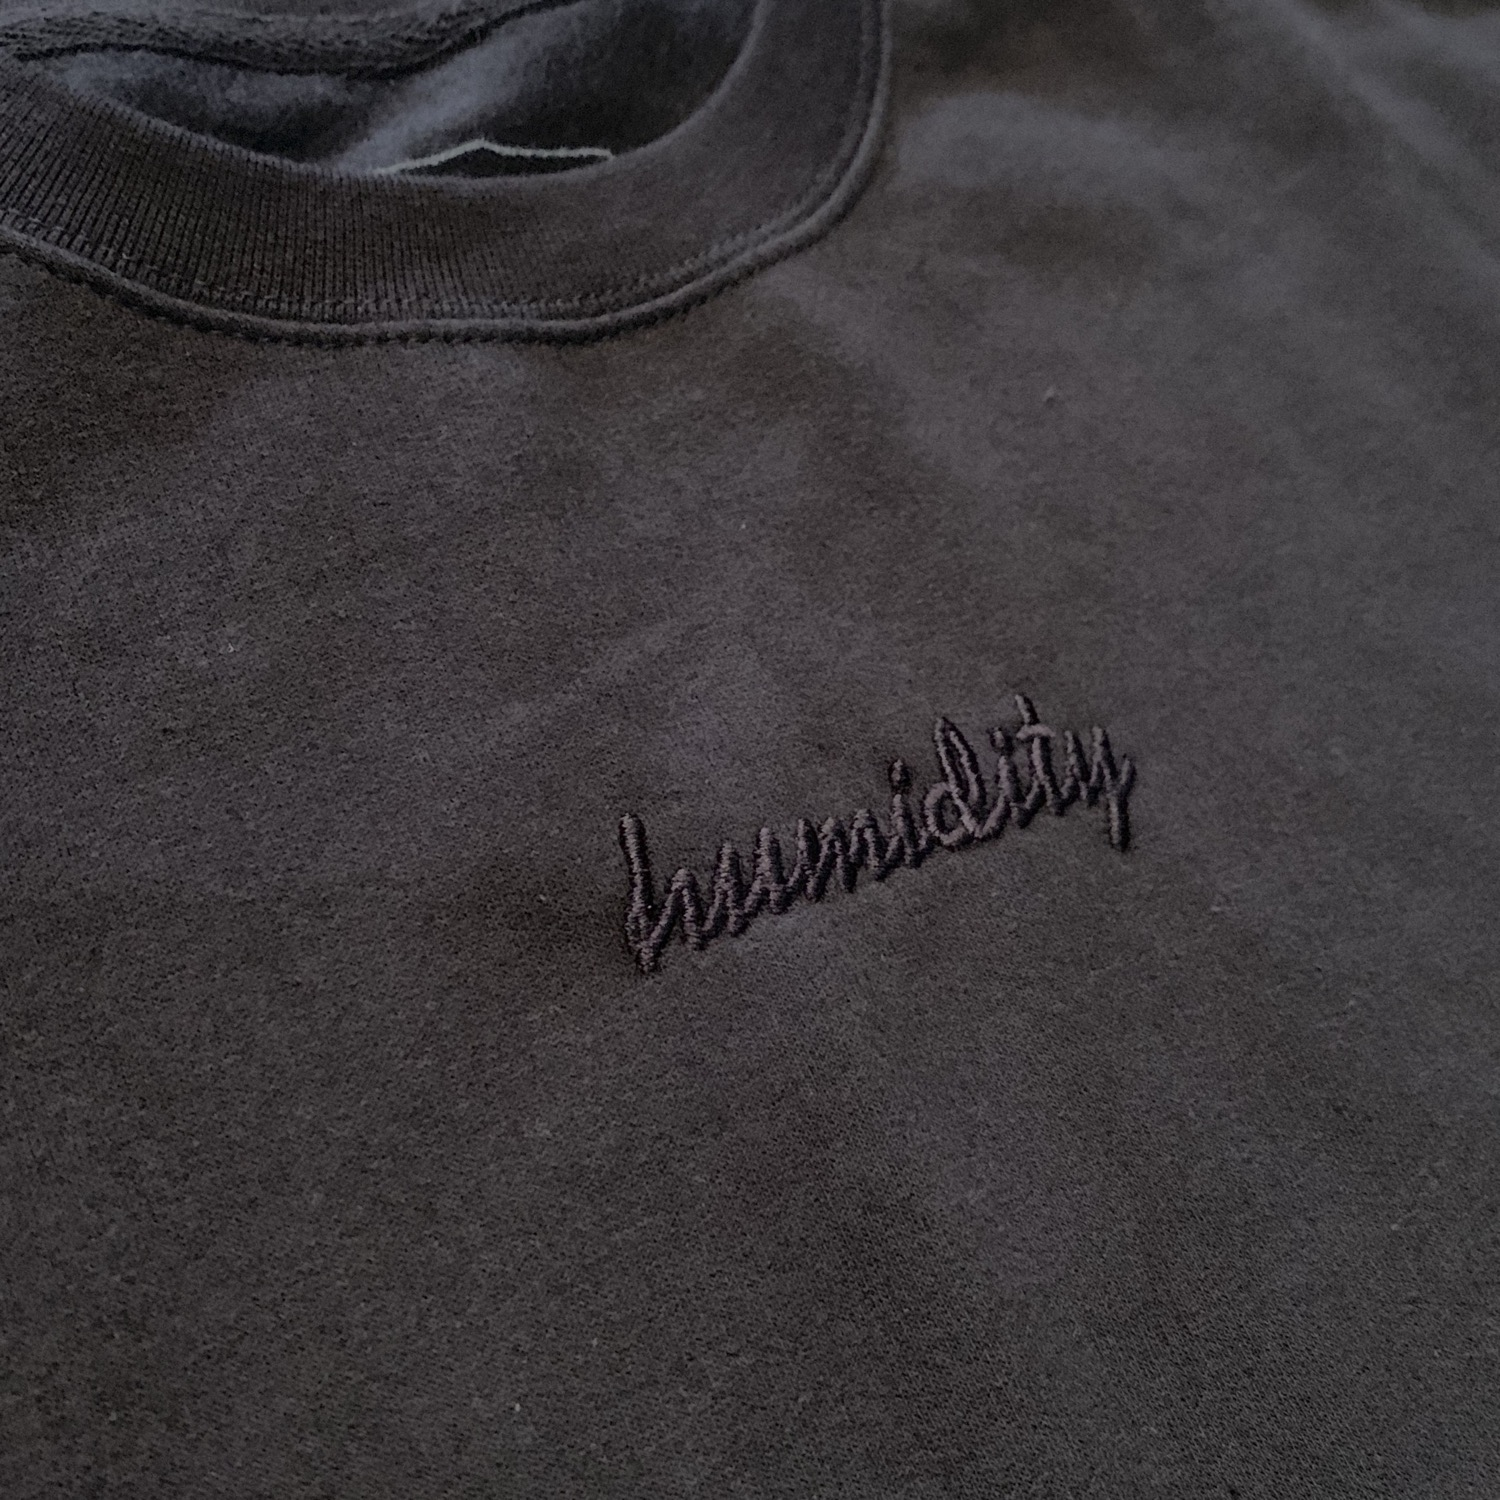 Thumbnail: Embroidered Script Crewneck